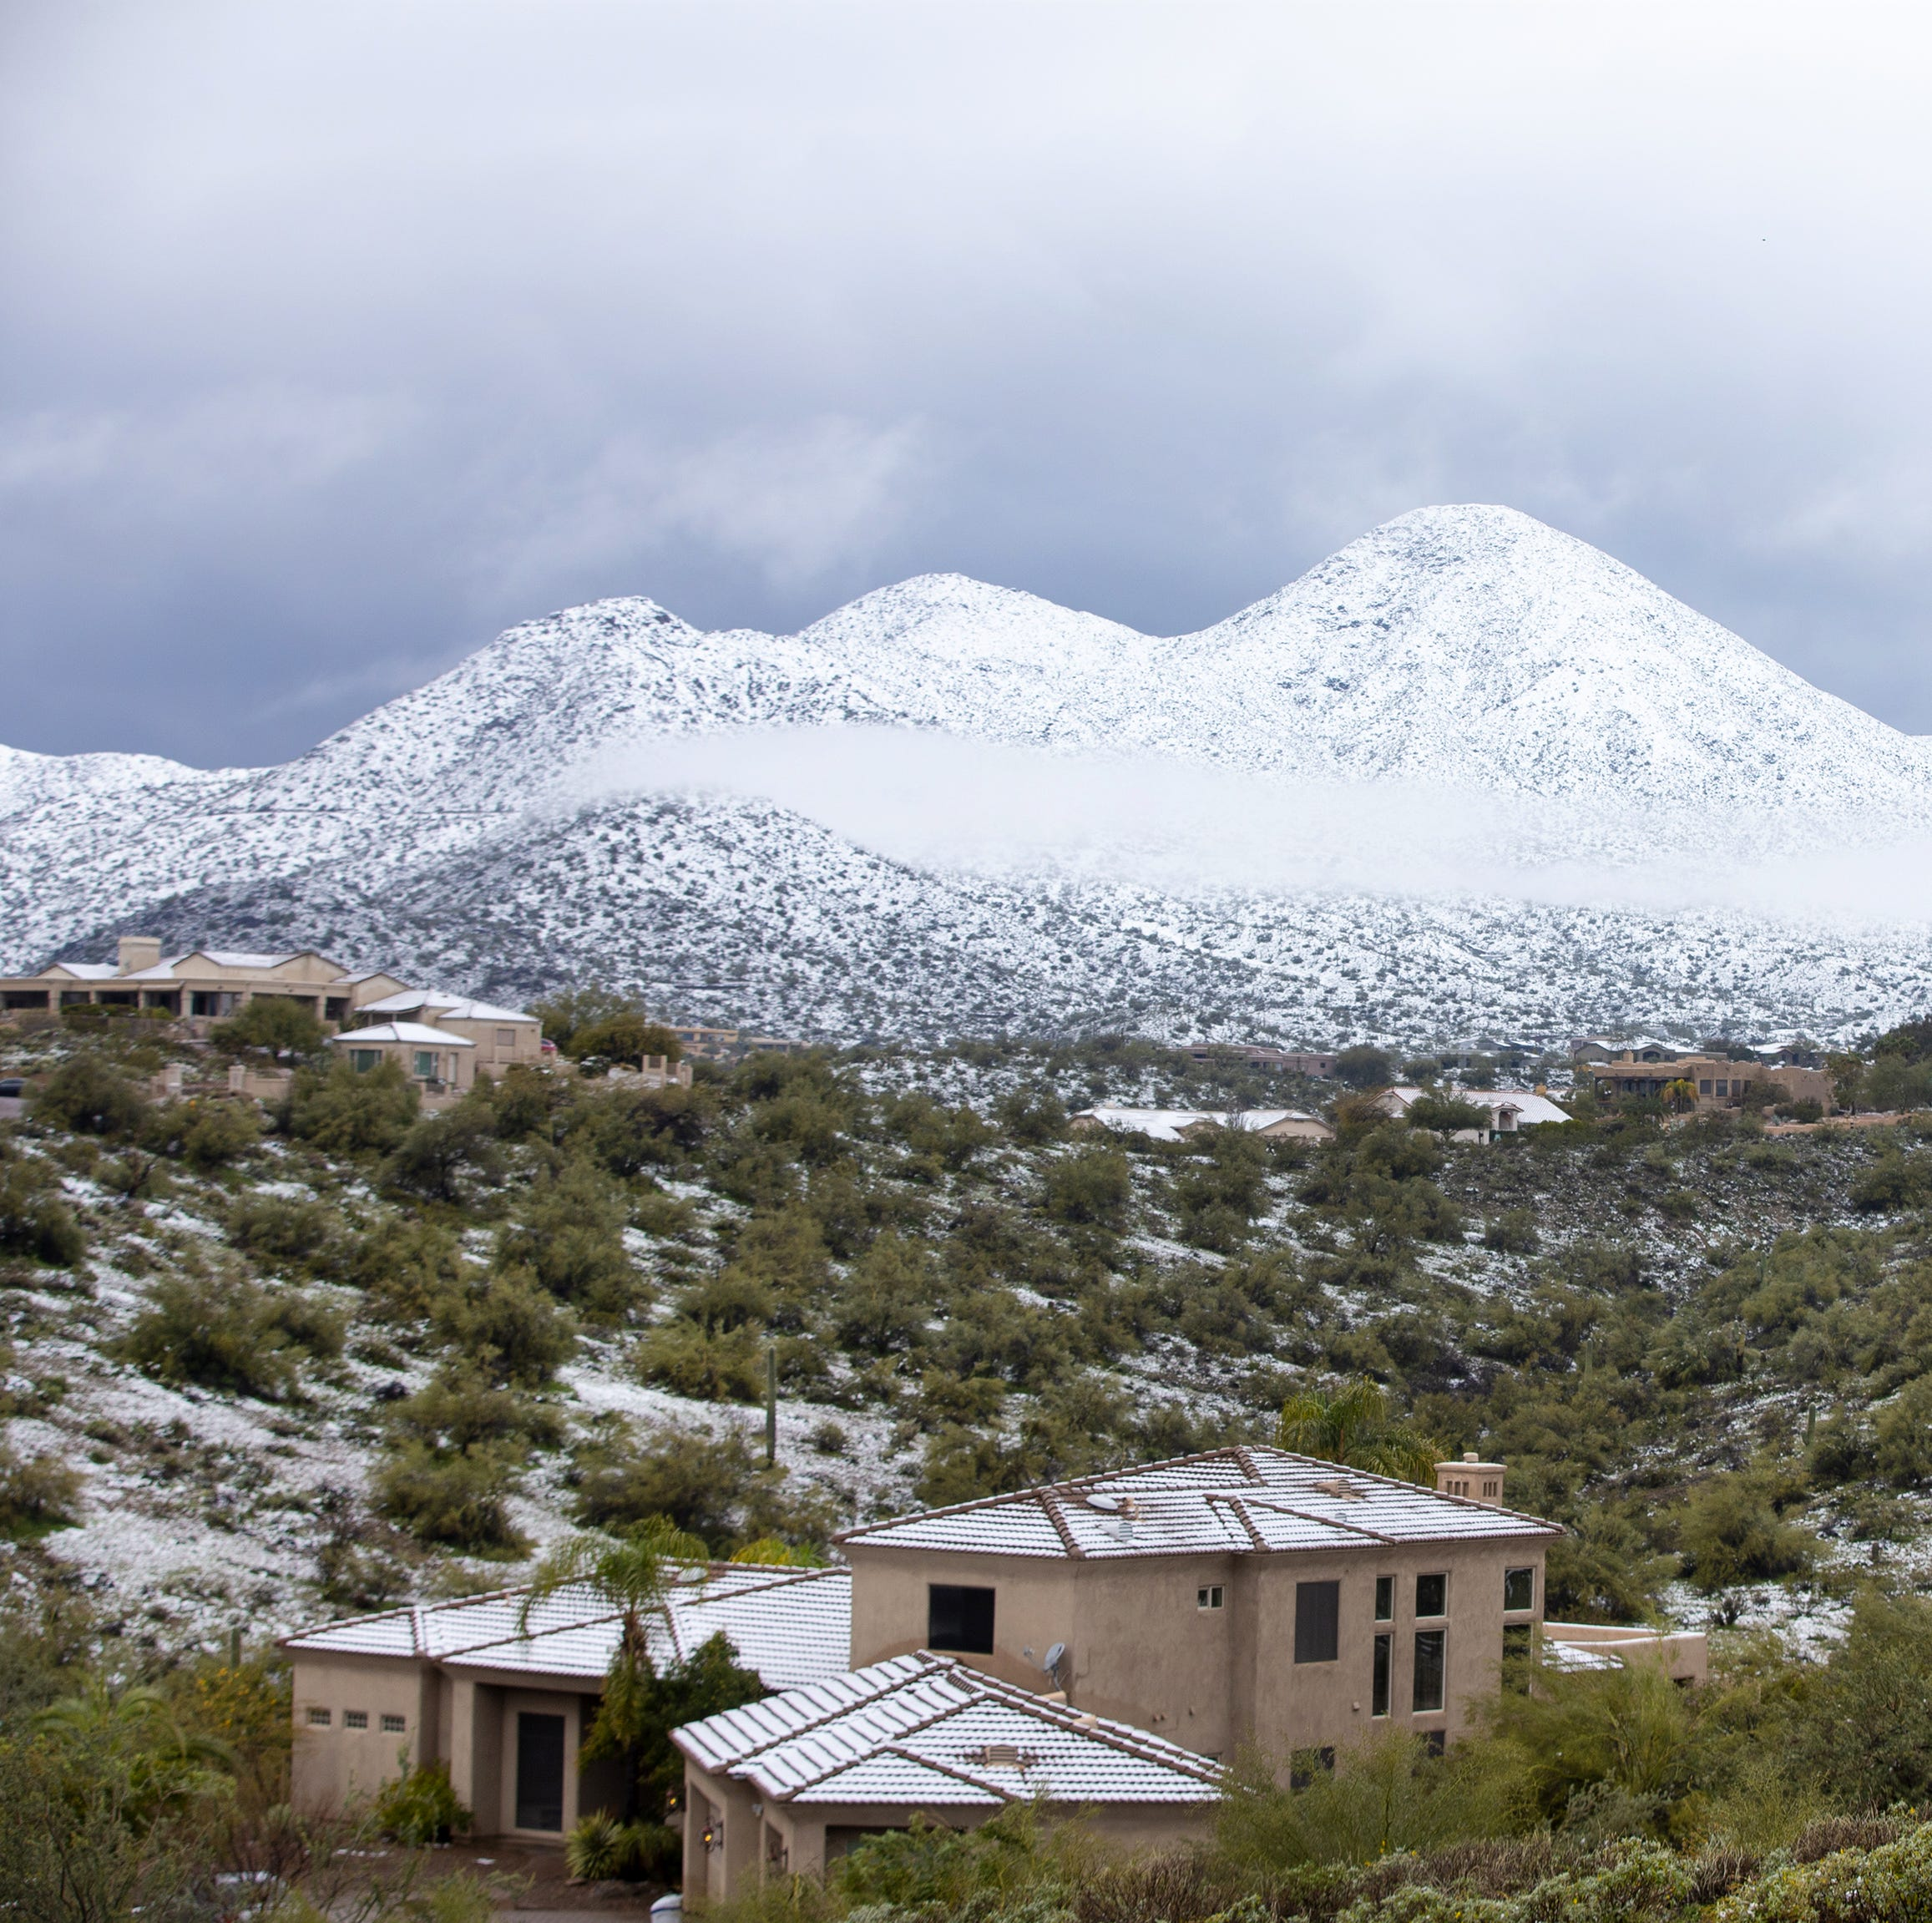 Winter's wallop: Snow, rain leave their mark, but next week will bring a different story